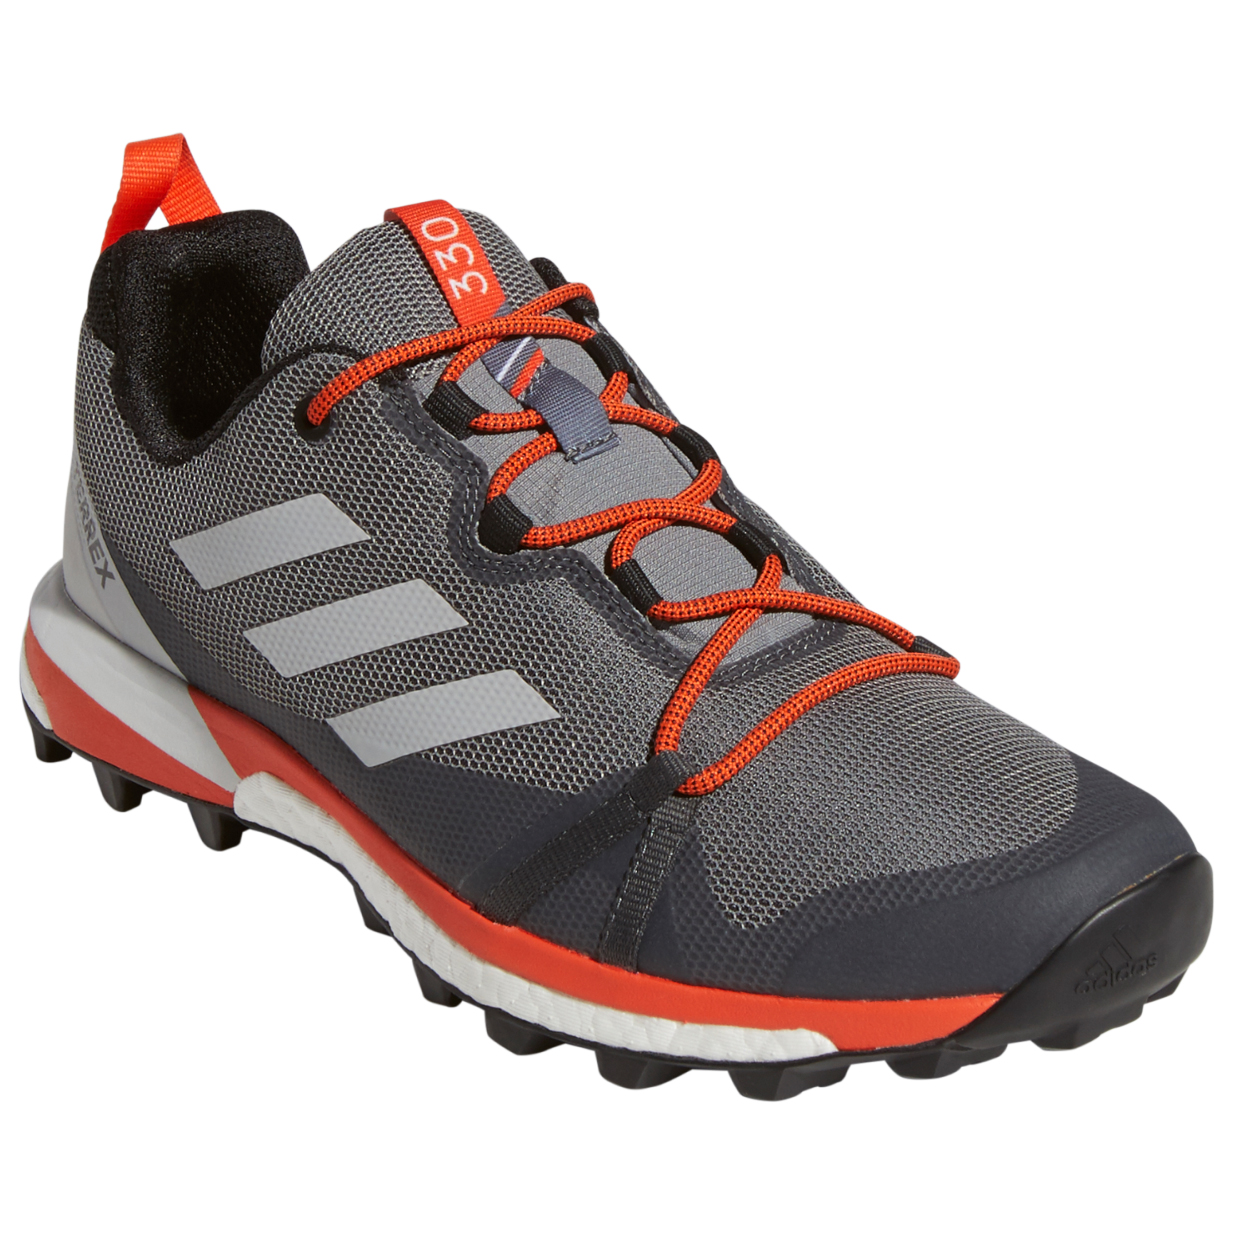 1c5a18051f1 adidas - Terrex Skychaser LT - Multisport shoes - Core Black / Core Black /  Grey Four | 6,5 (UK)